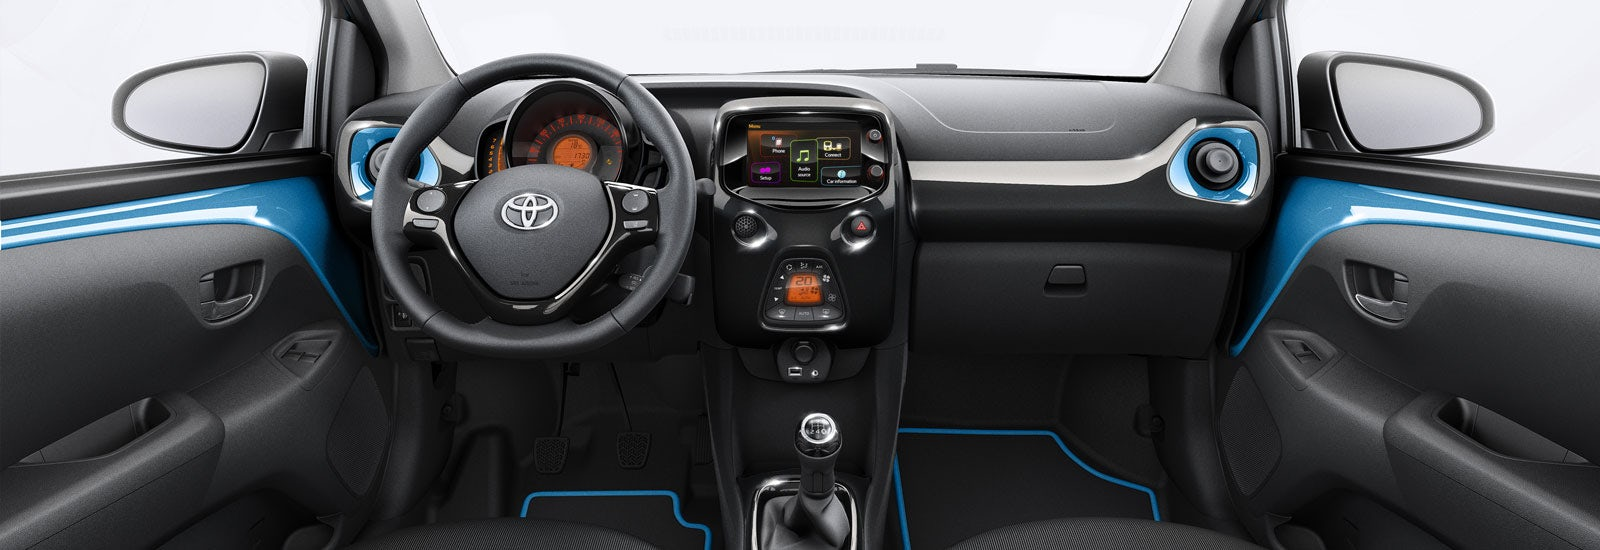 Toyota Aygo facelift price, specs and release date | carwow